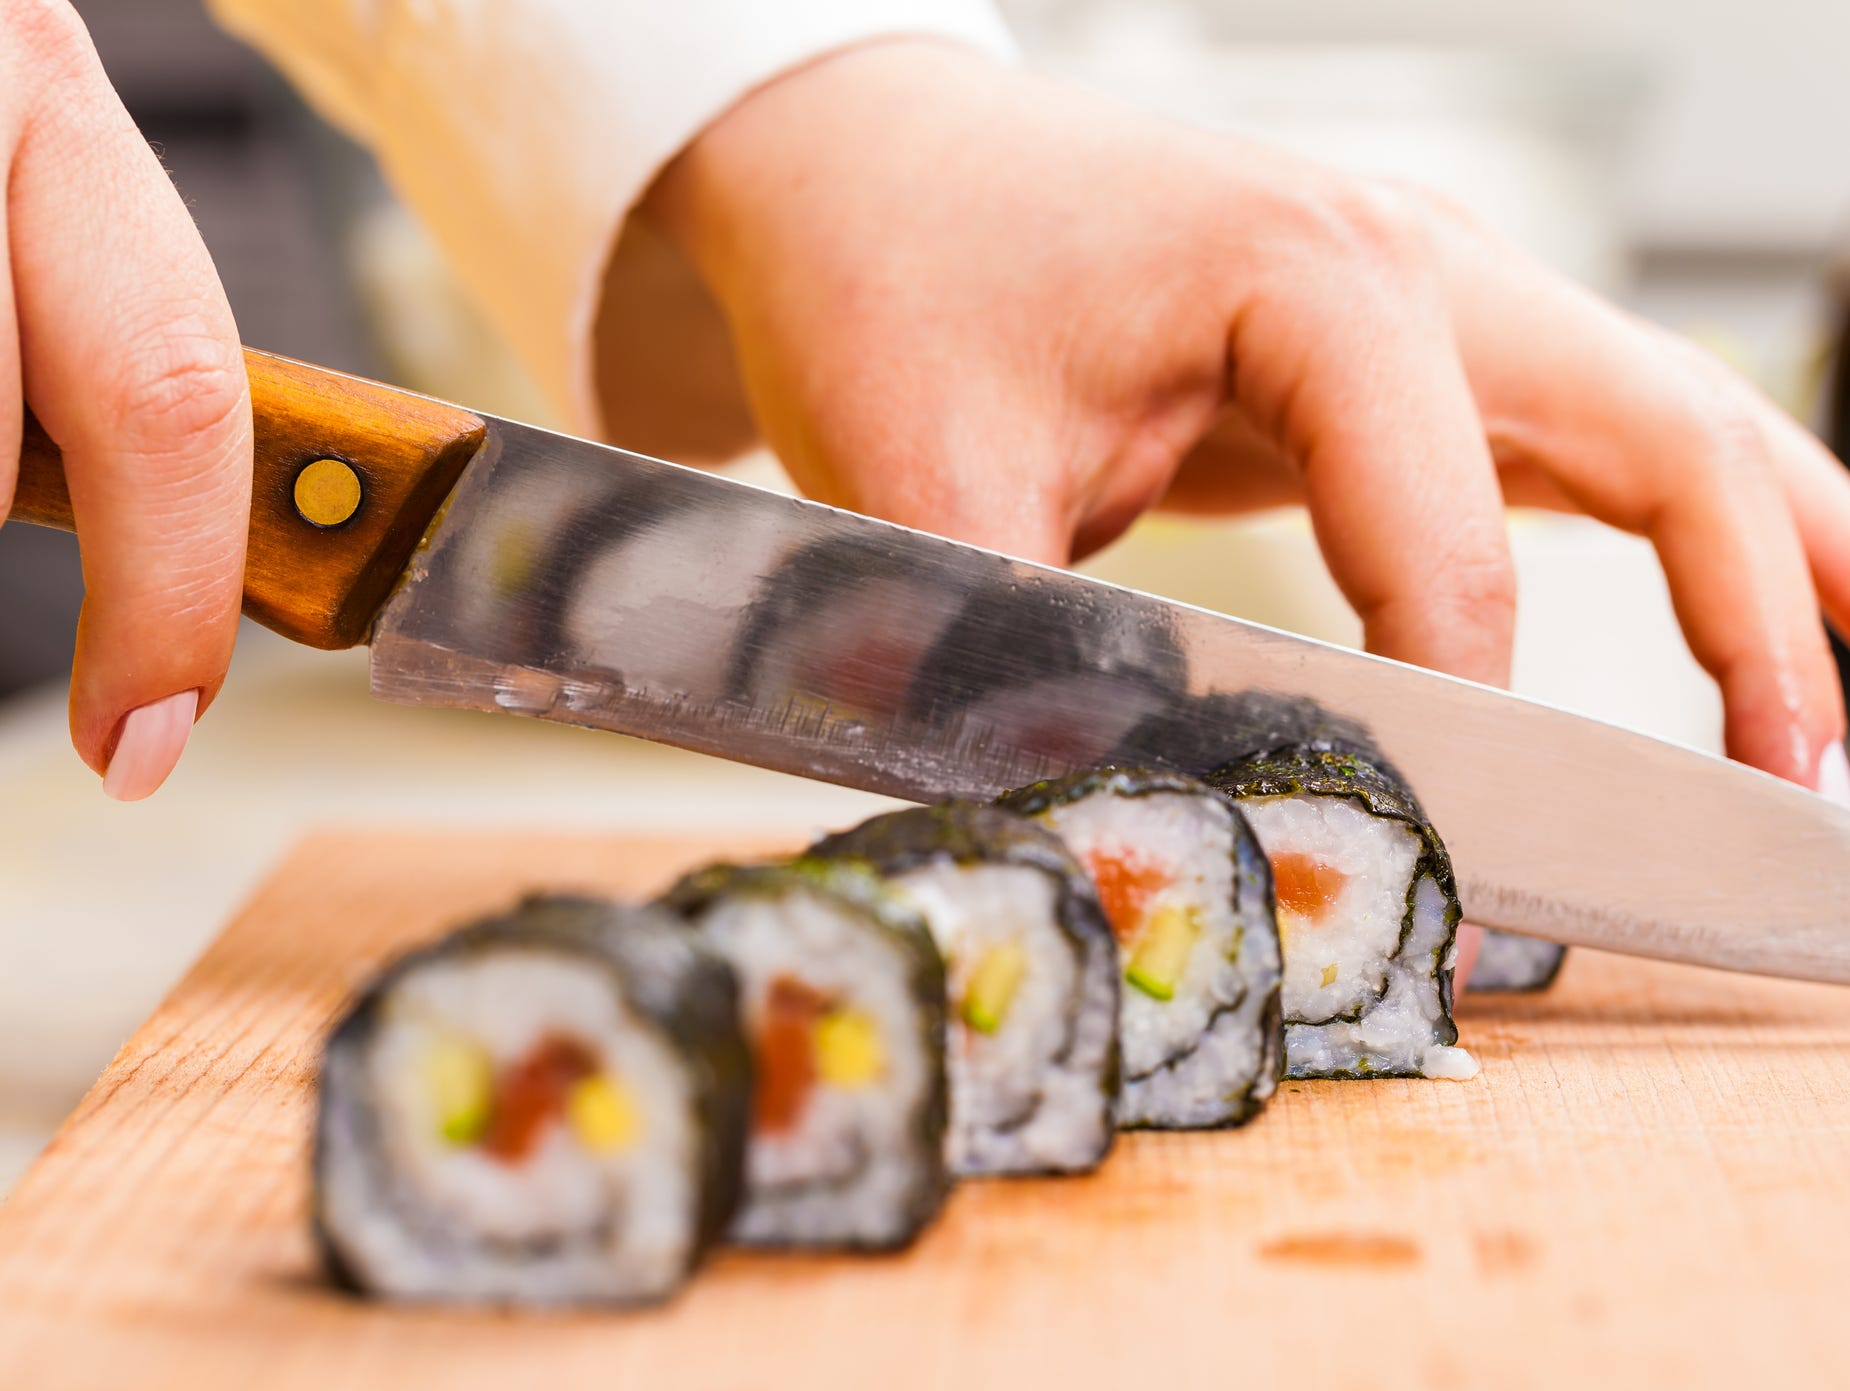 Learn how to make sushi with Chef Walker. $20 discount for Insiders!